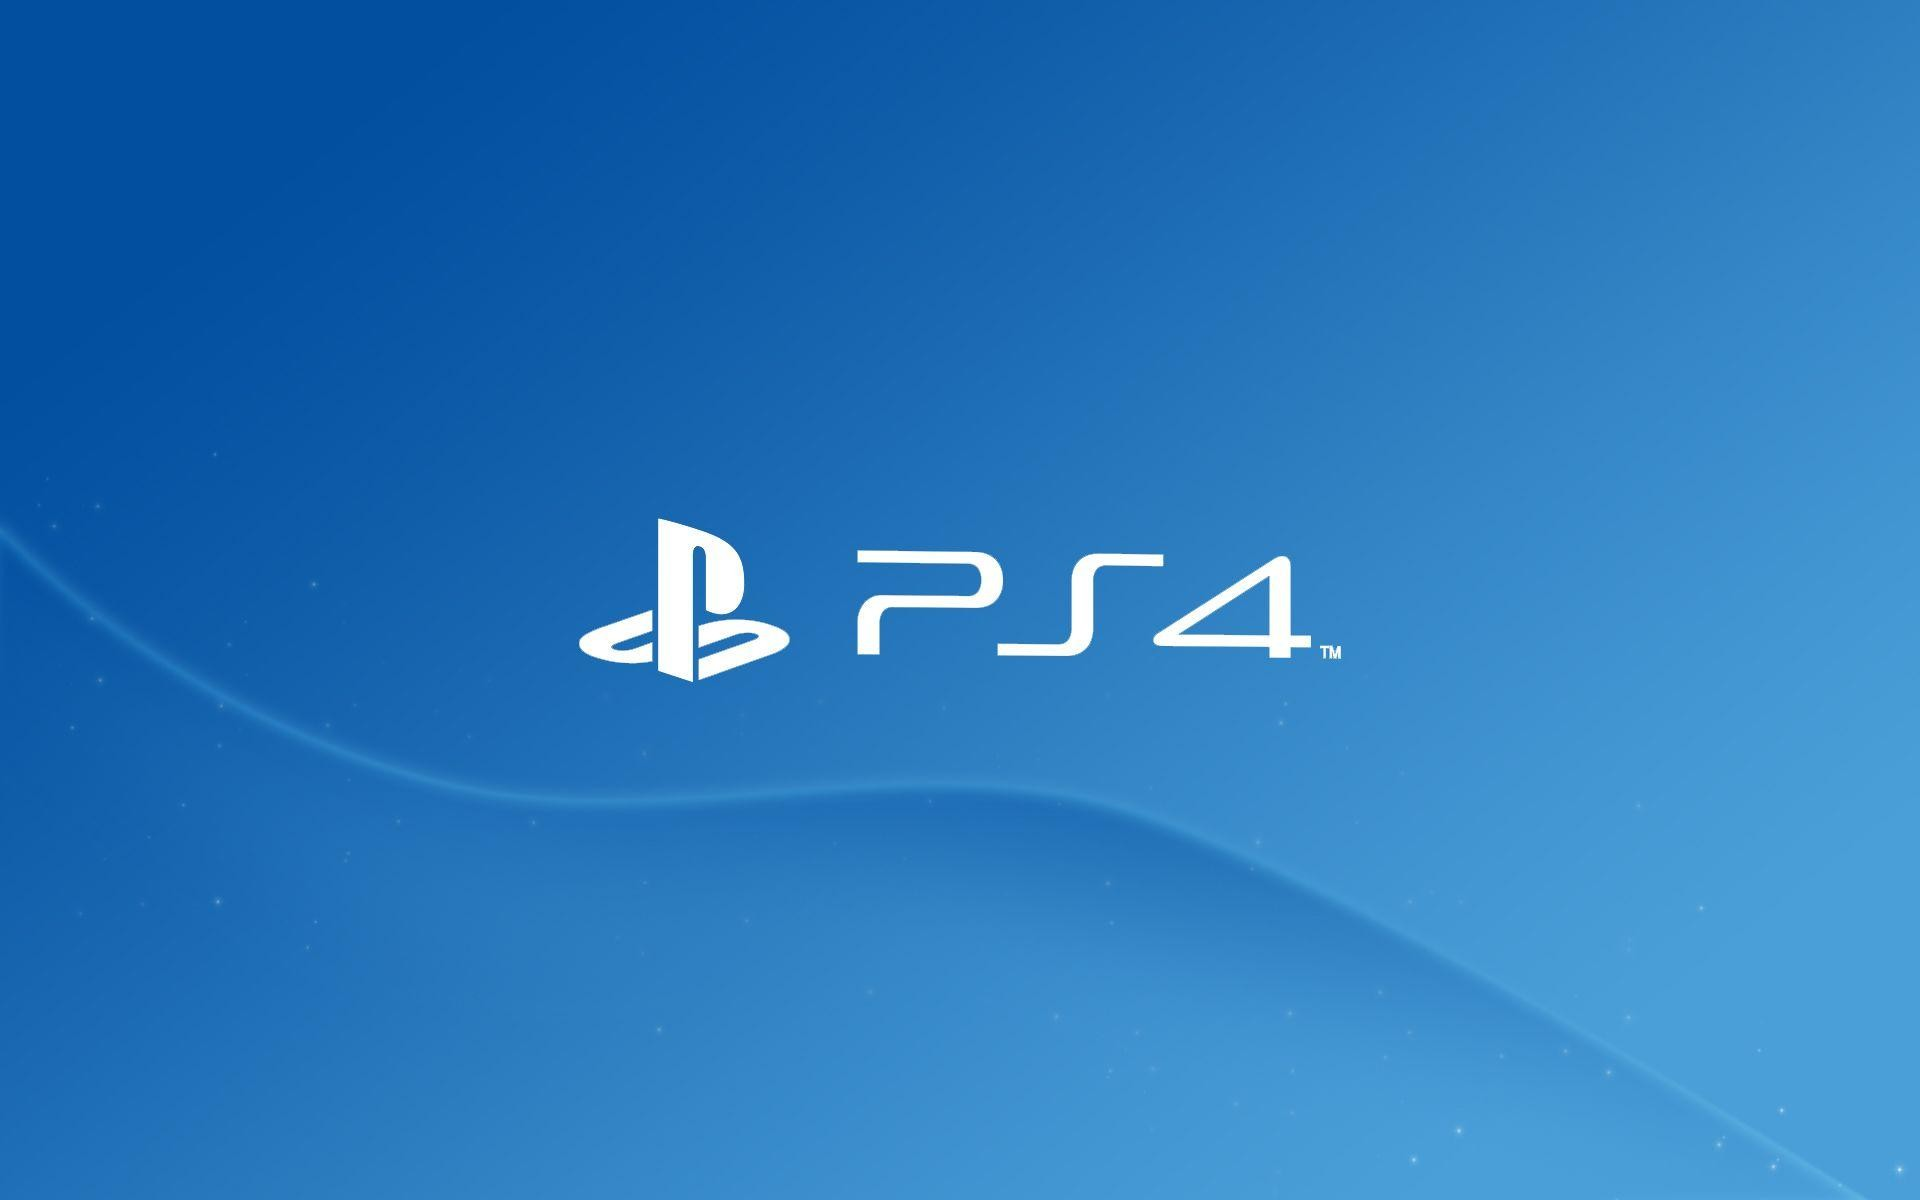 Ps4 Wallpapers Hd 1080p 82 Images